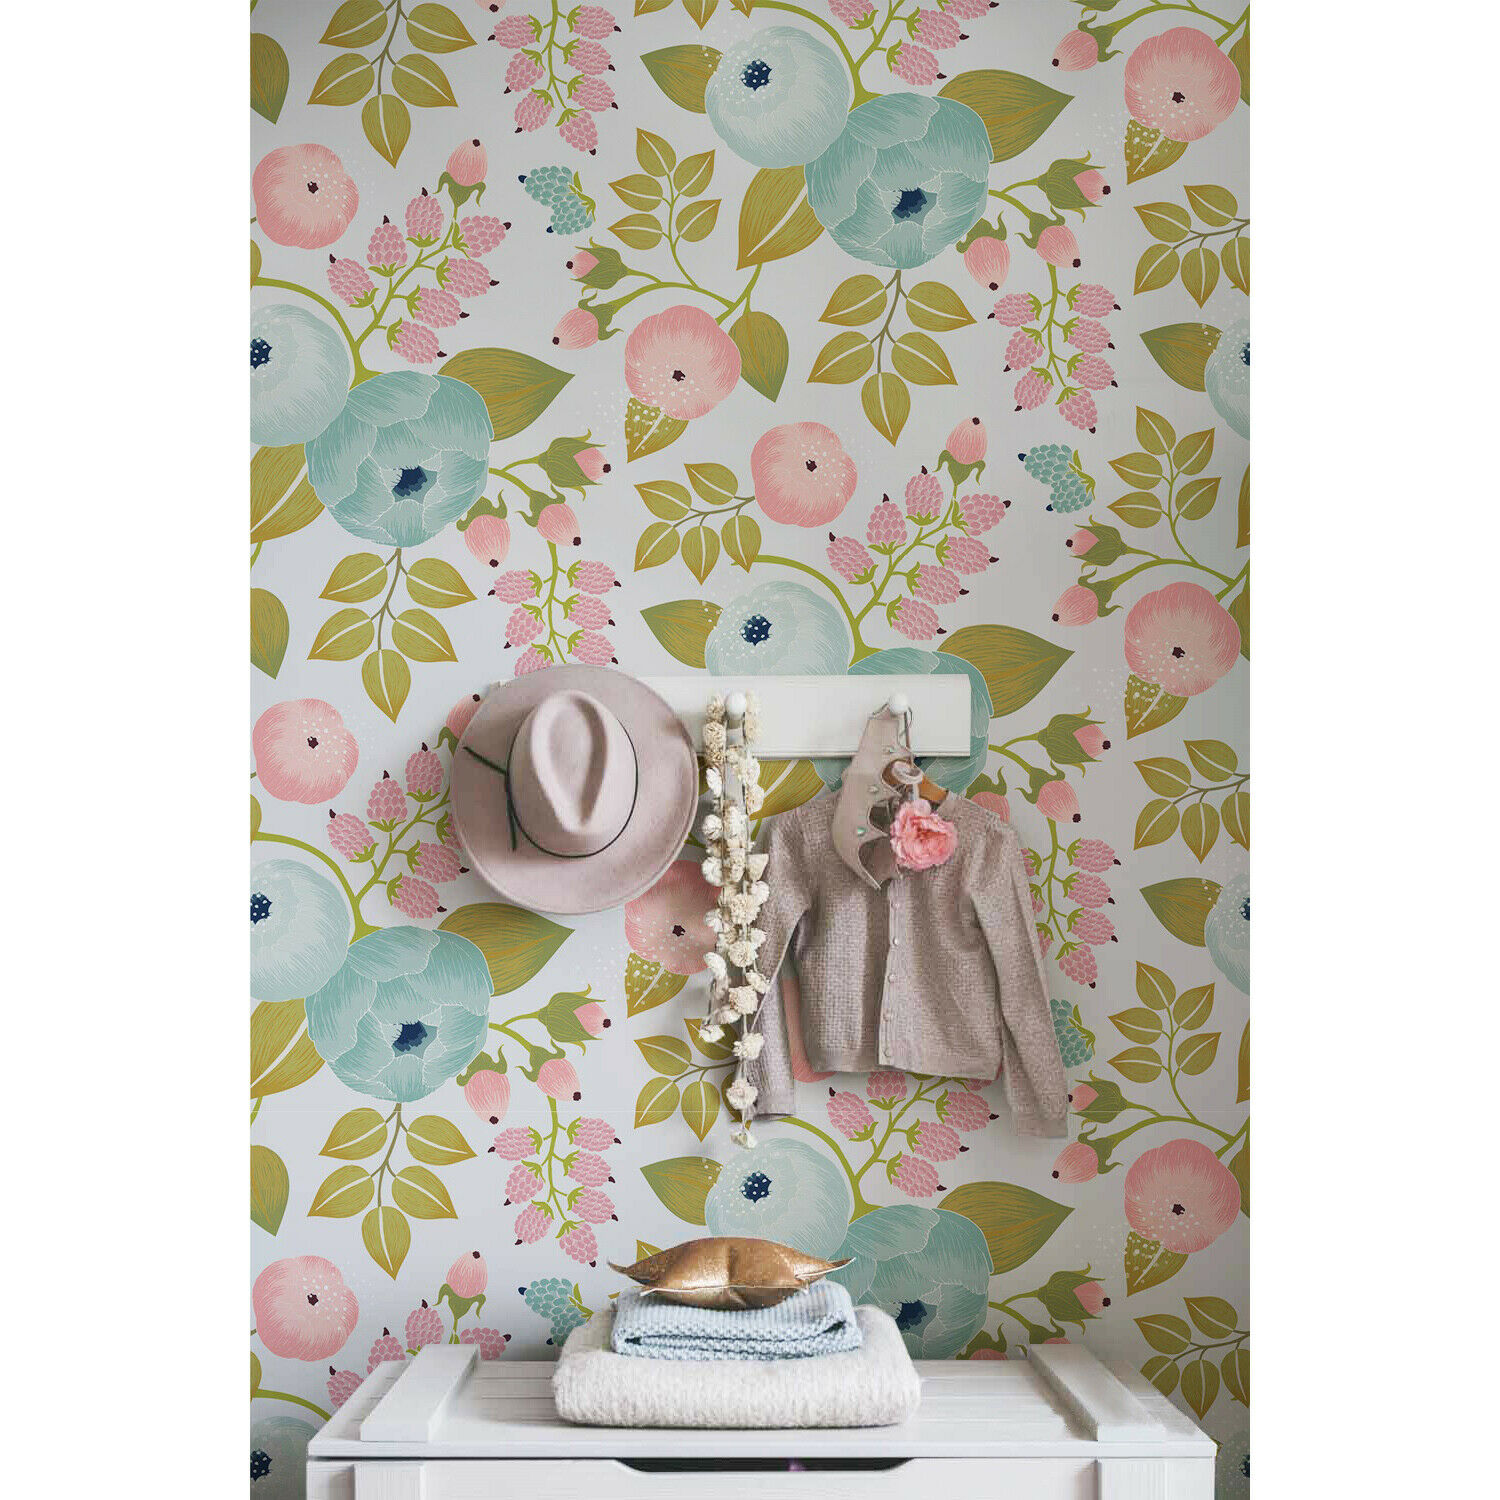 Removable wallpaper Spring Floral Floral WaterFarbe Self Adhesive Home Decor